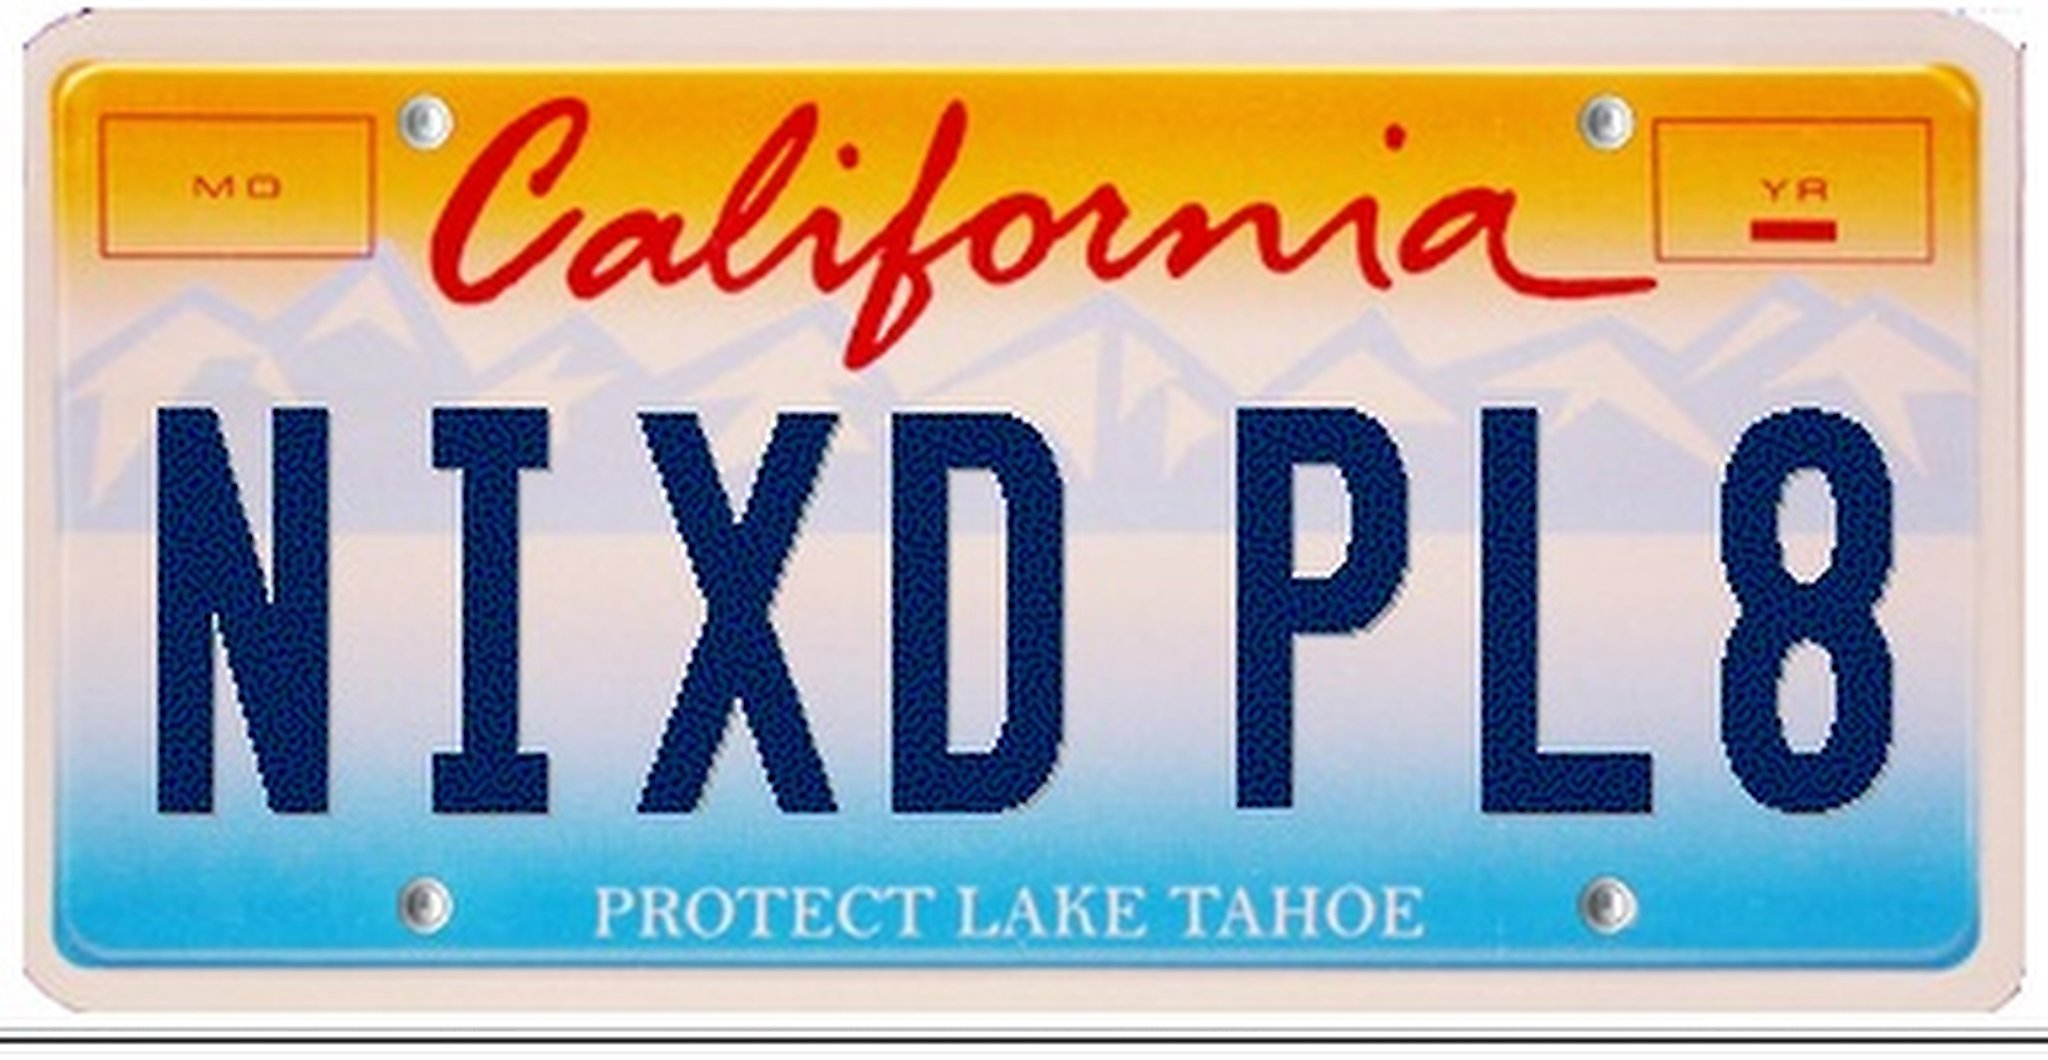 Vanity plates rejected by DMV (Caution: sexual content) - New Haven